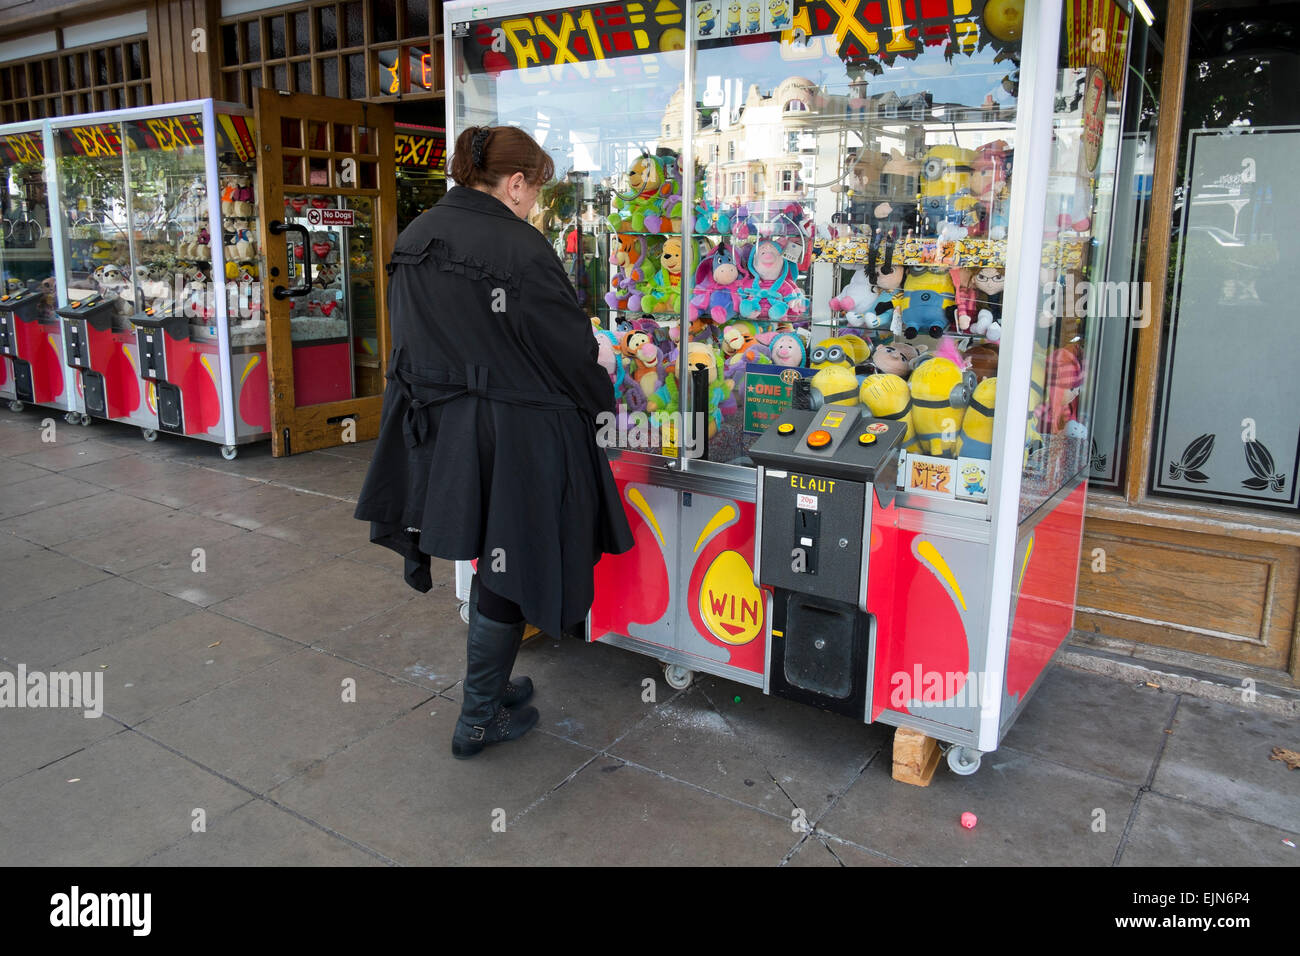 Prize Machines Stock Photos & Prize Machines Stock Images - Alamy